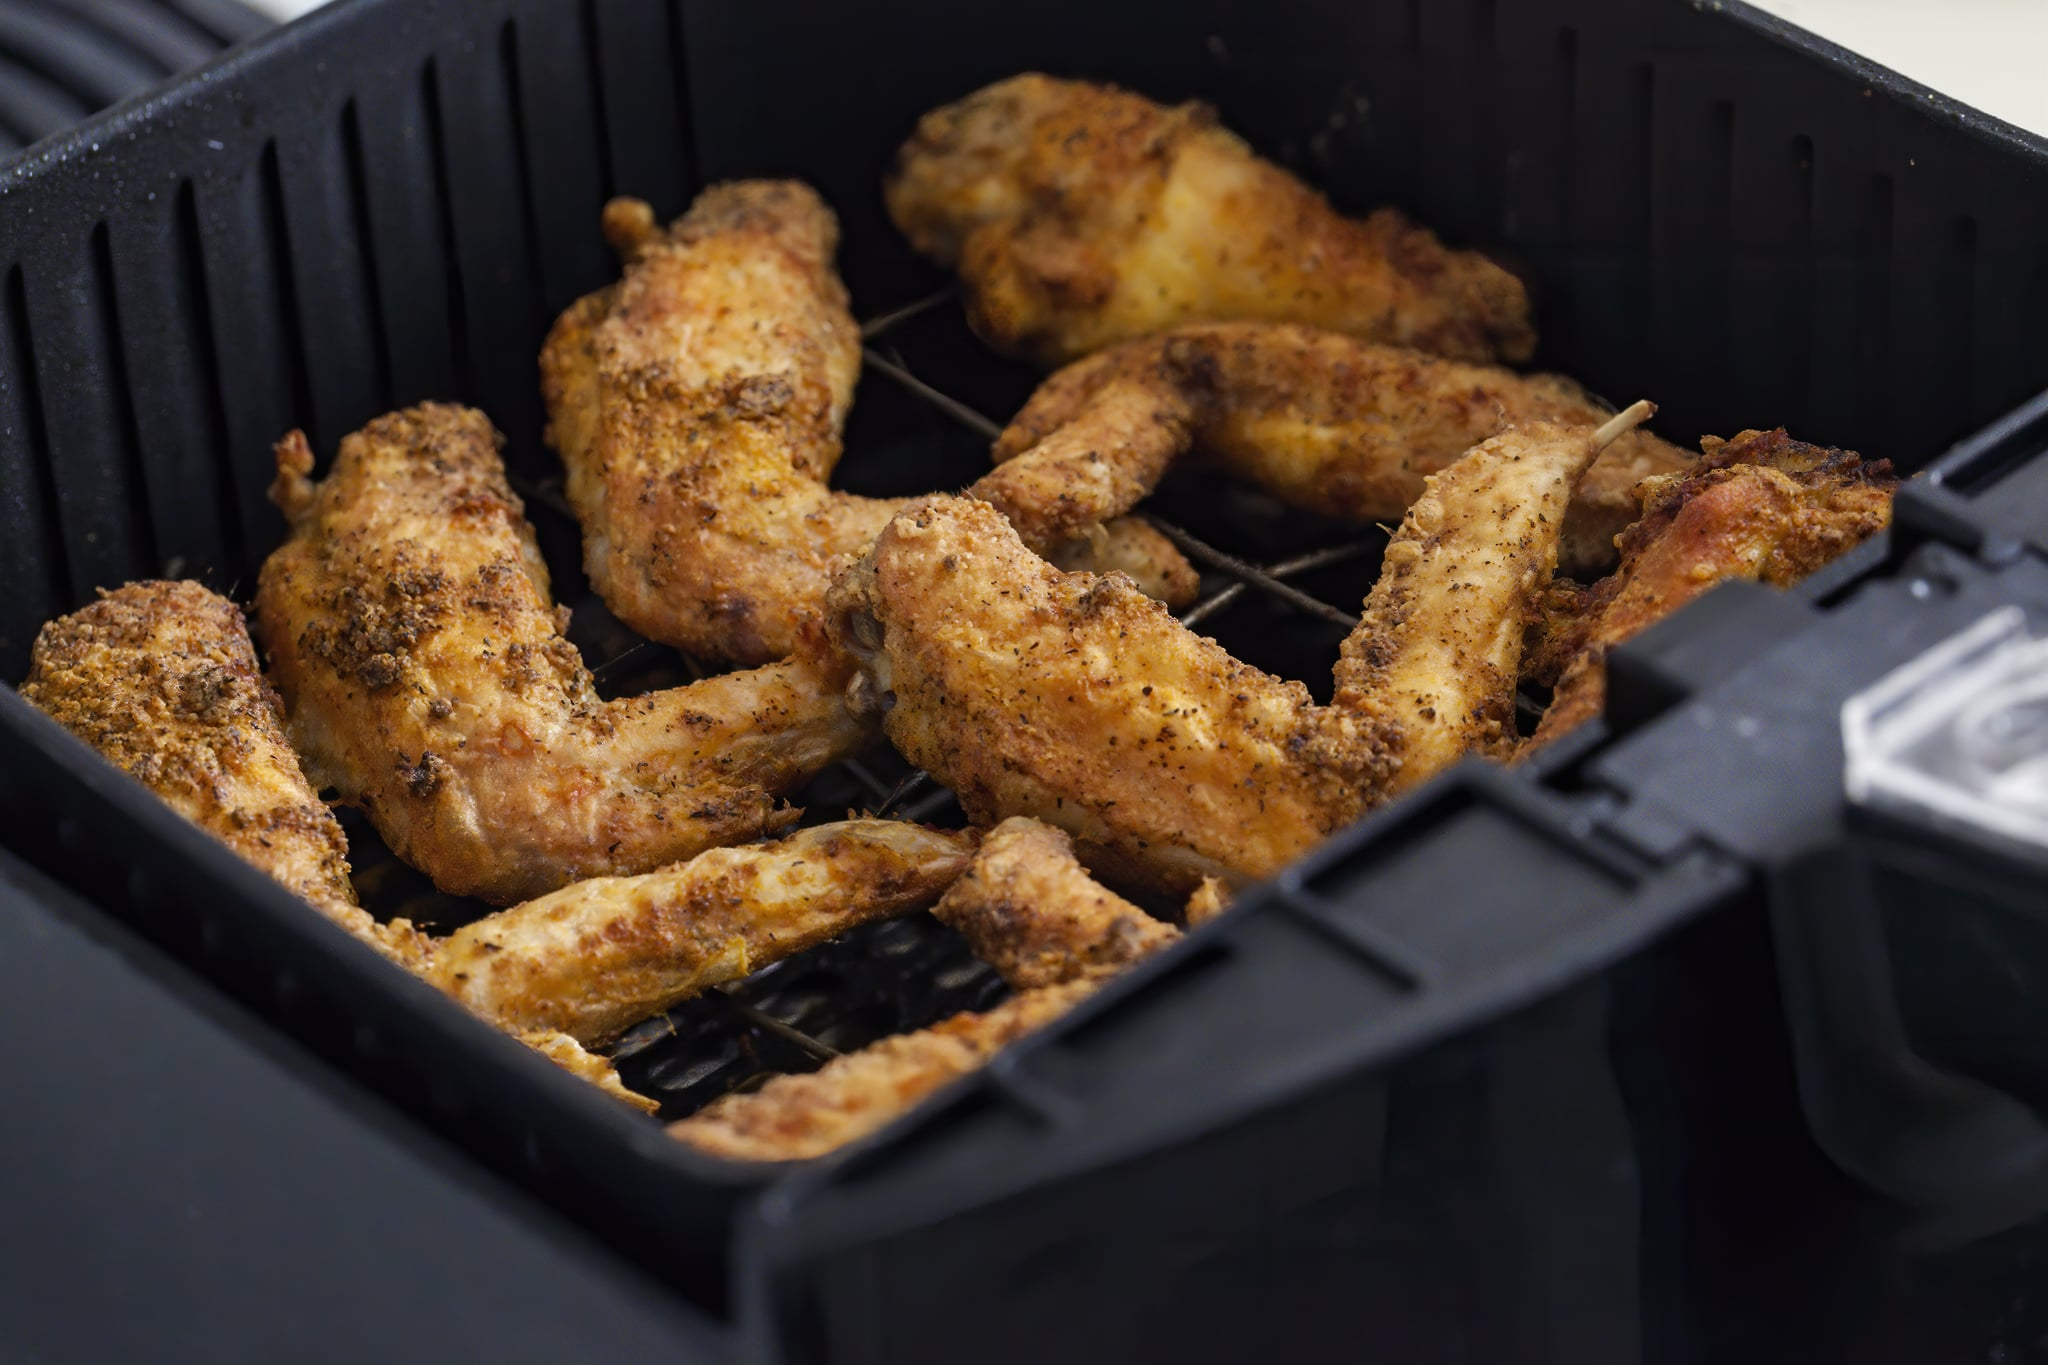 Air fried in air-fryer, new trend of healthy and low fat food